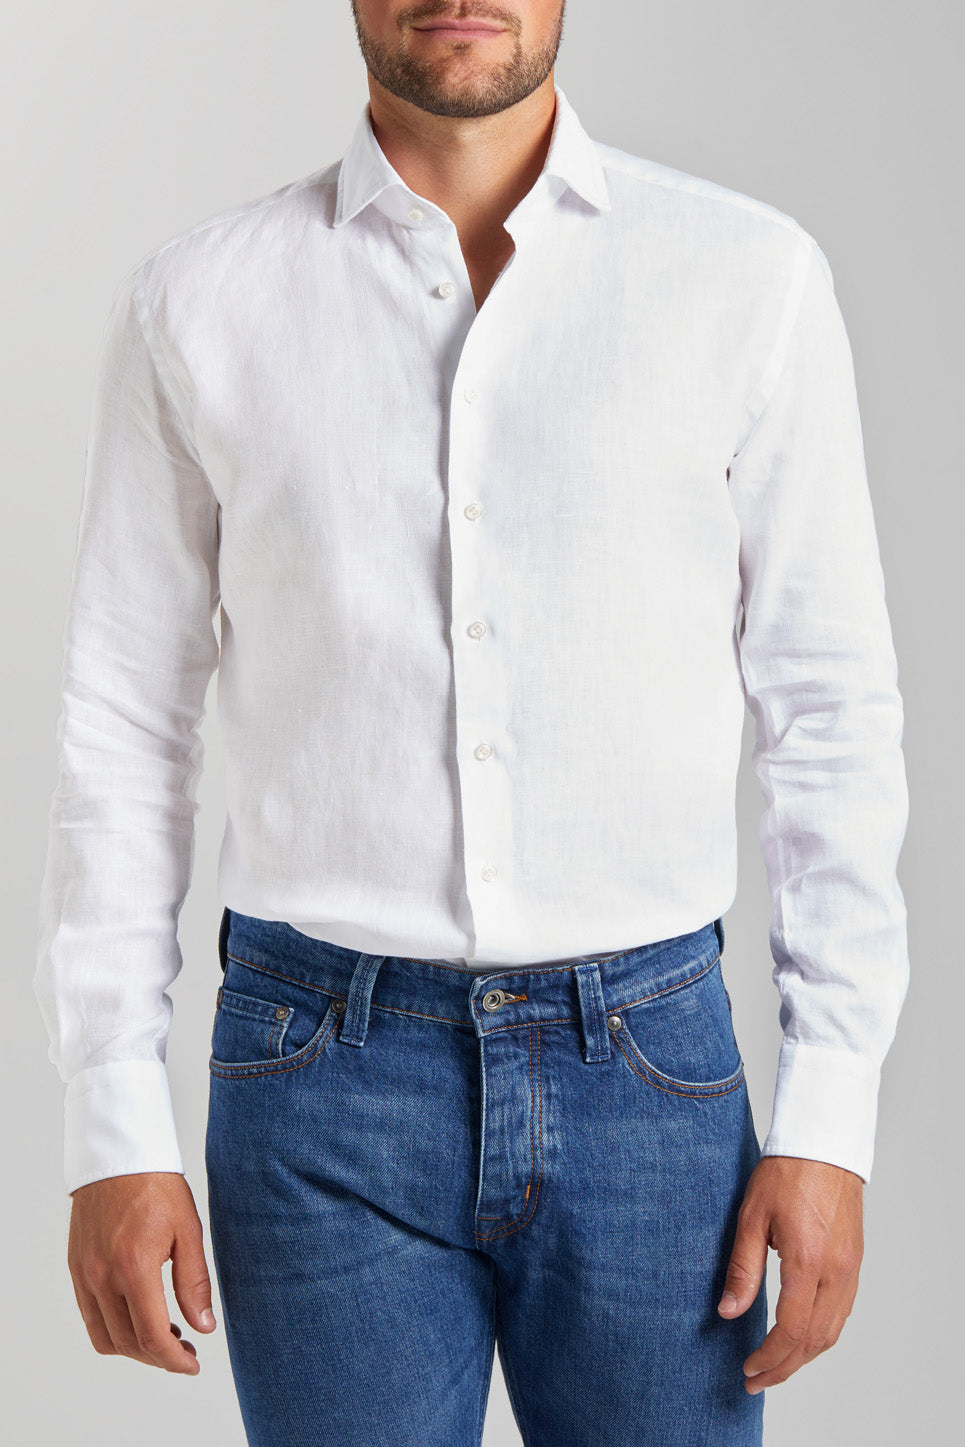 Classic Fit White Linen